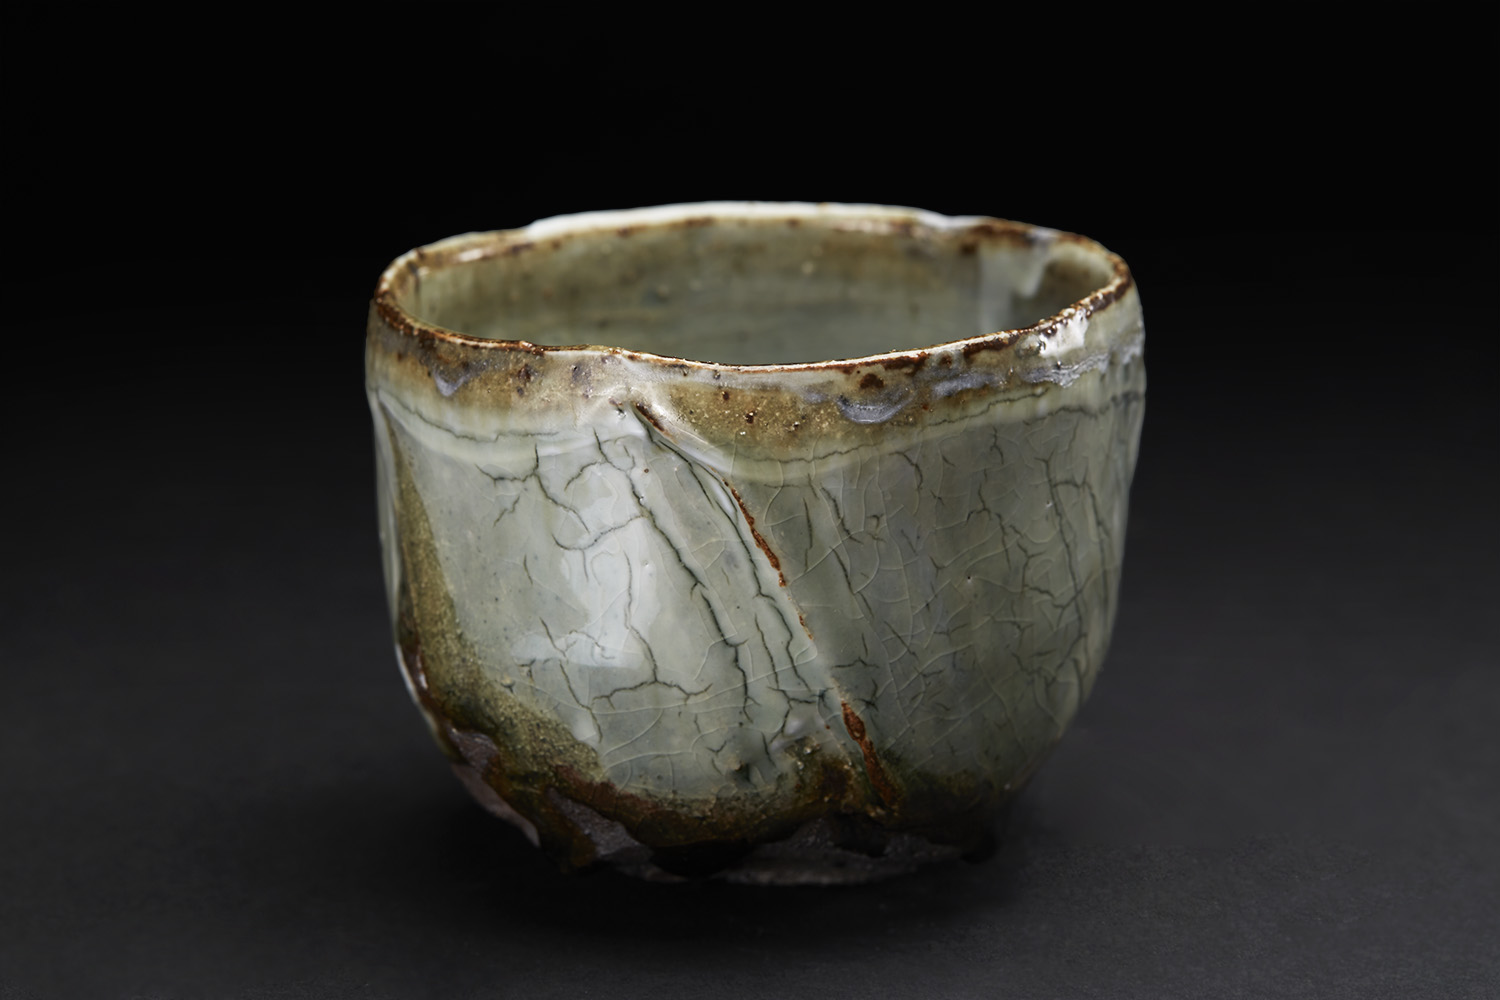 Margaret Curtis Chawan, 2016 Stoneware, reduction fired in brick built oil kiln at 1300 Celsius. Thrown and altered, black body with porcelain slip and celadon glaze. 3.5 x 4.5 x 4.5 inches 8.9 x 11.4 x 11.4 cm MCu 2